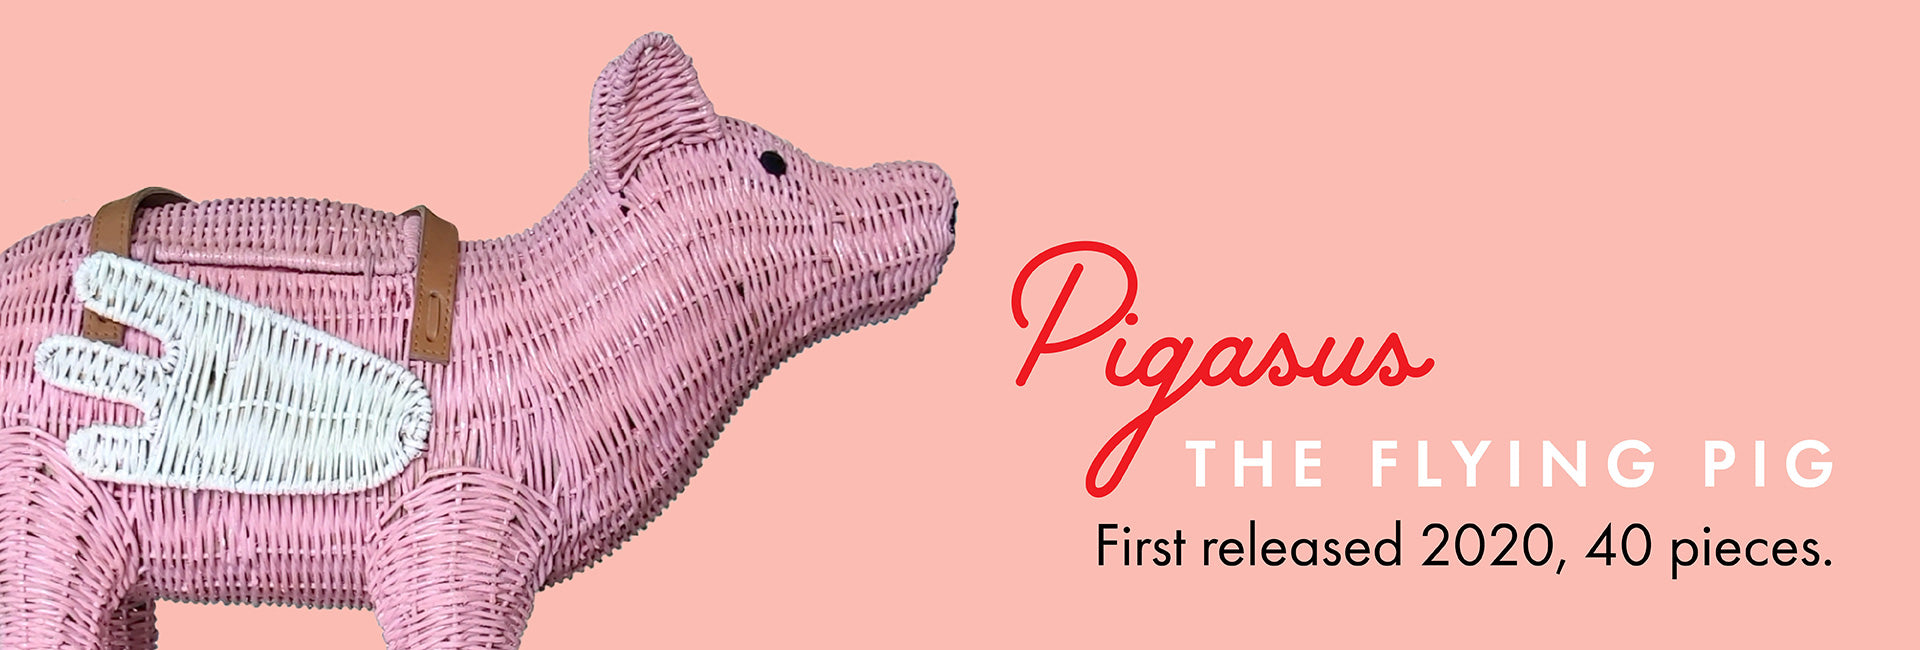 Pigasus the flying pig. First released 2020, 40 pieces.